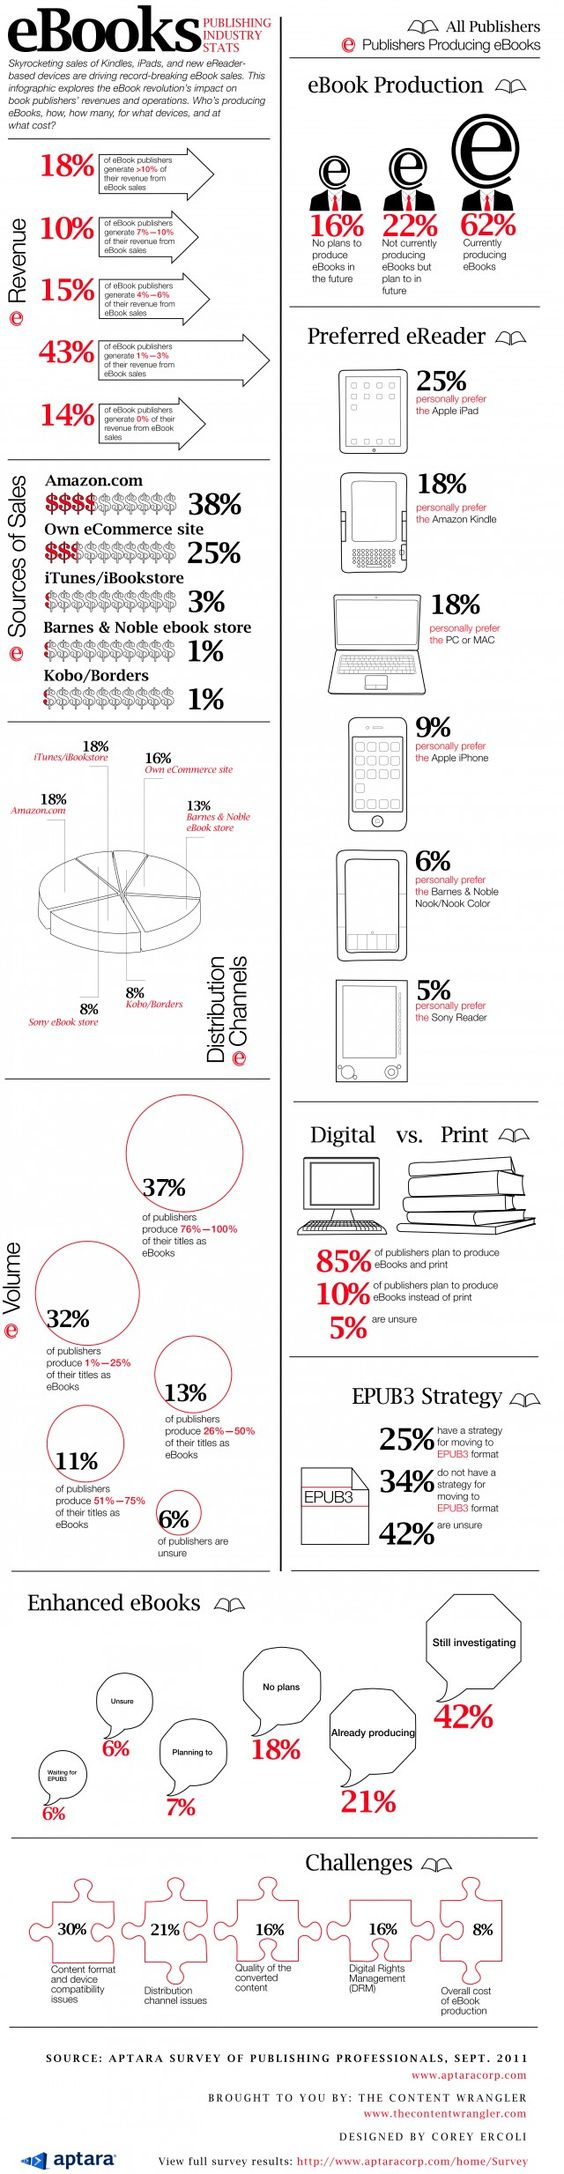 Thisgraphic Providesrmation About The Ebook Industry And Its  Effects On The Publishing Industry